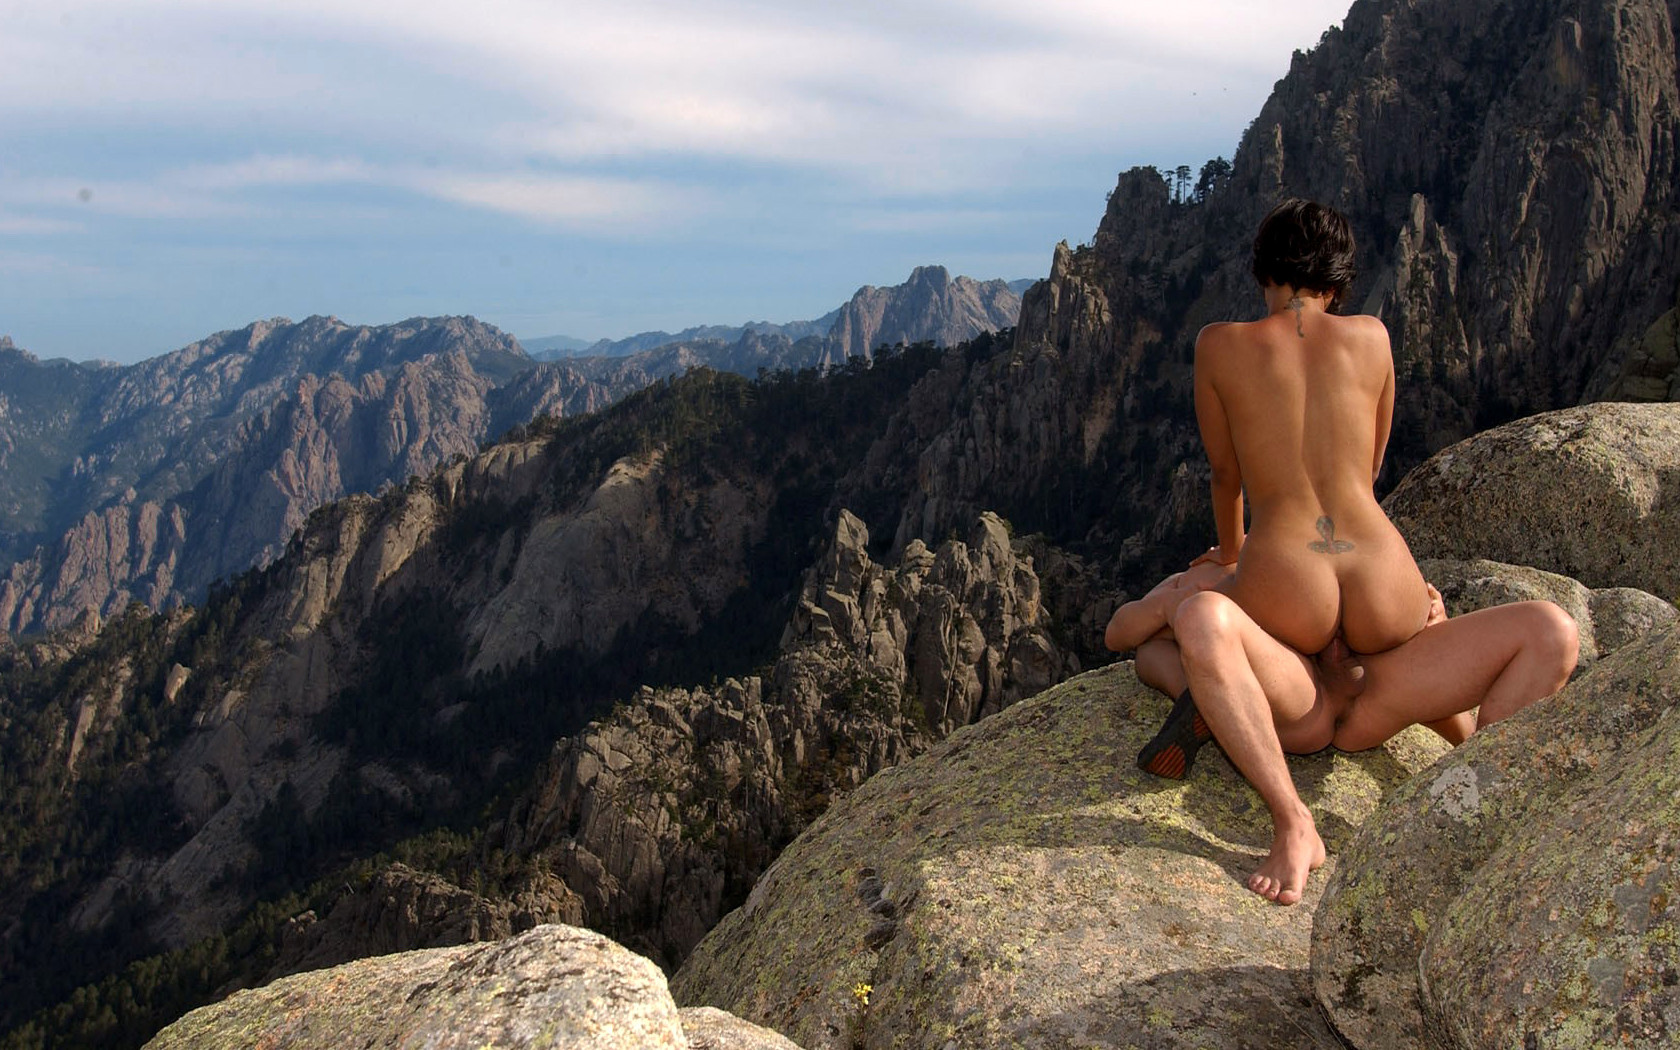 Peachypeaks Talks The Naked Truth About Nudist Mountaineering In Colorado